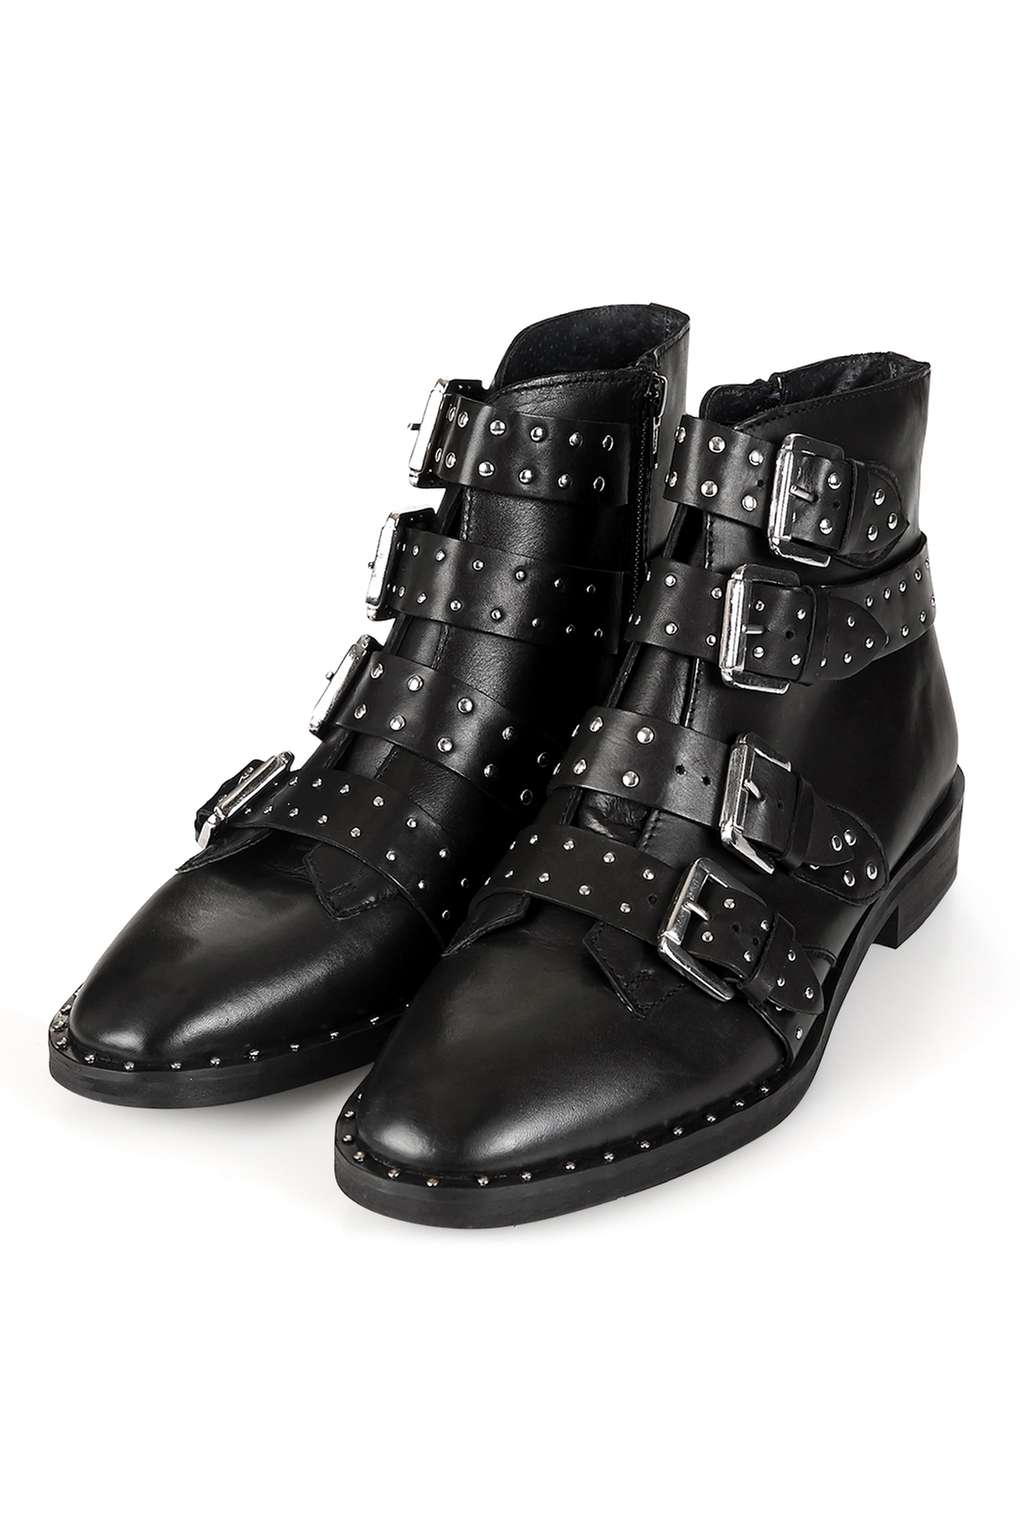 Topshop Leather Amy Studded Buckle Bootie In Black Lyst